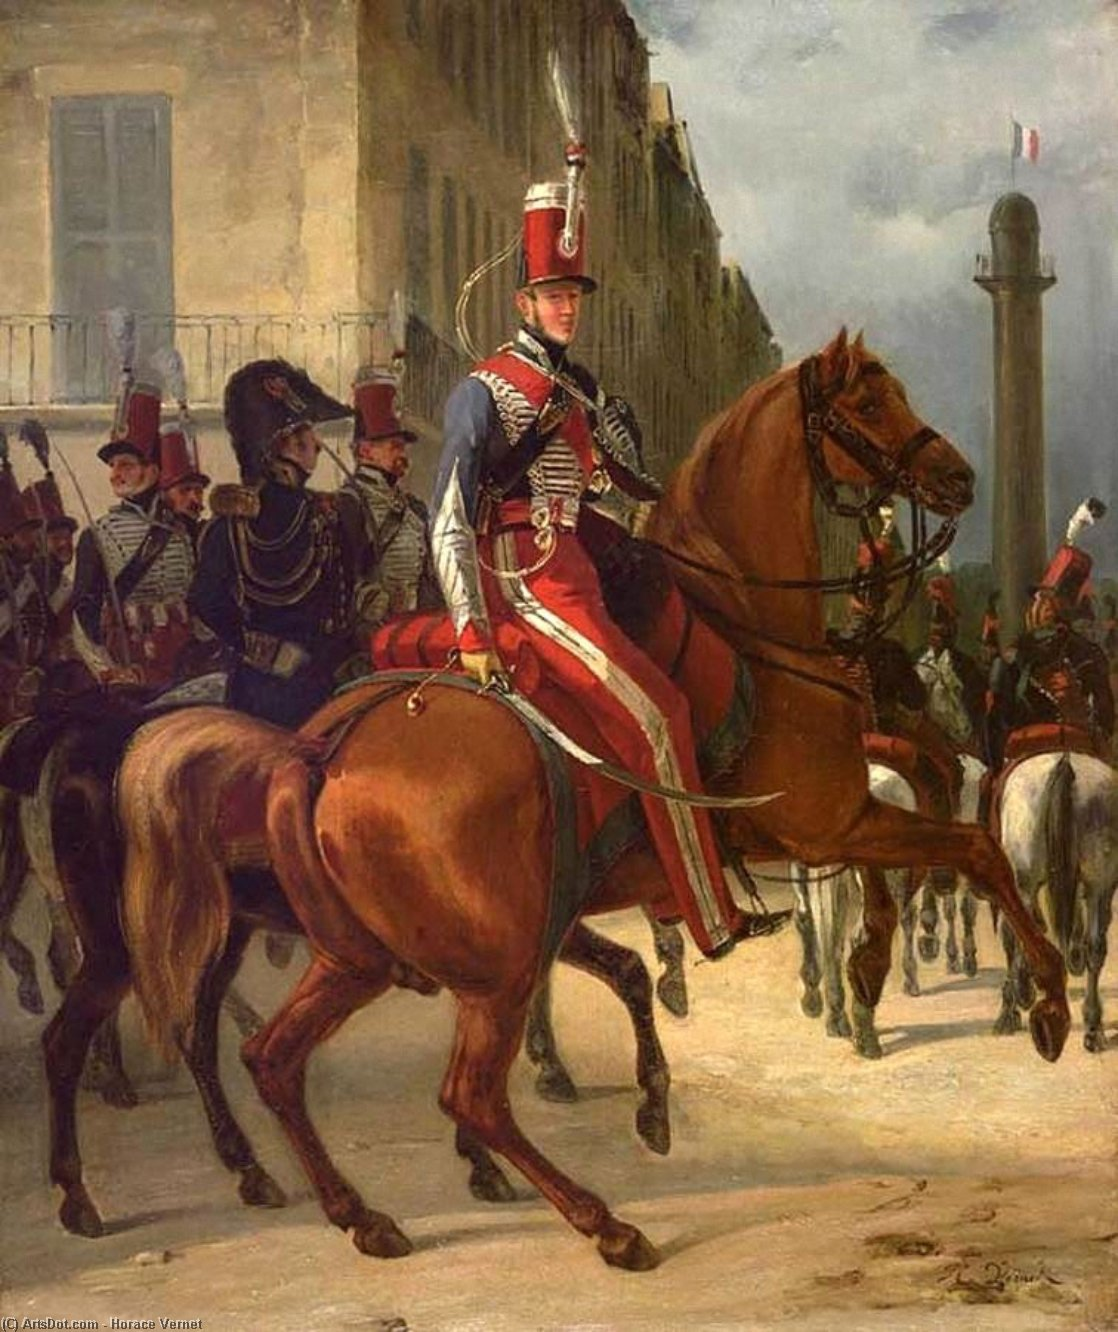 The Duke of Chartres on Horseback, Oil On Canvas by Emile Jean Horace Vernet (1789-1863)